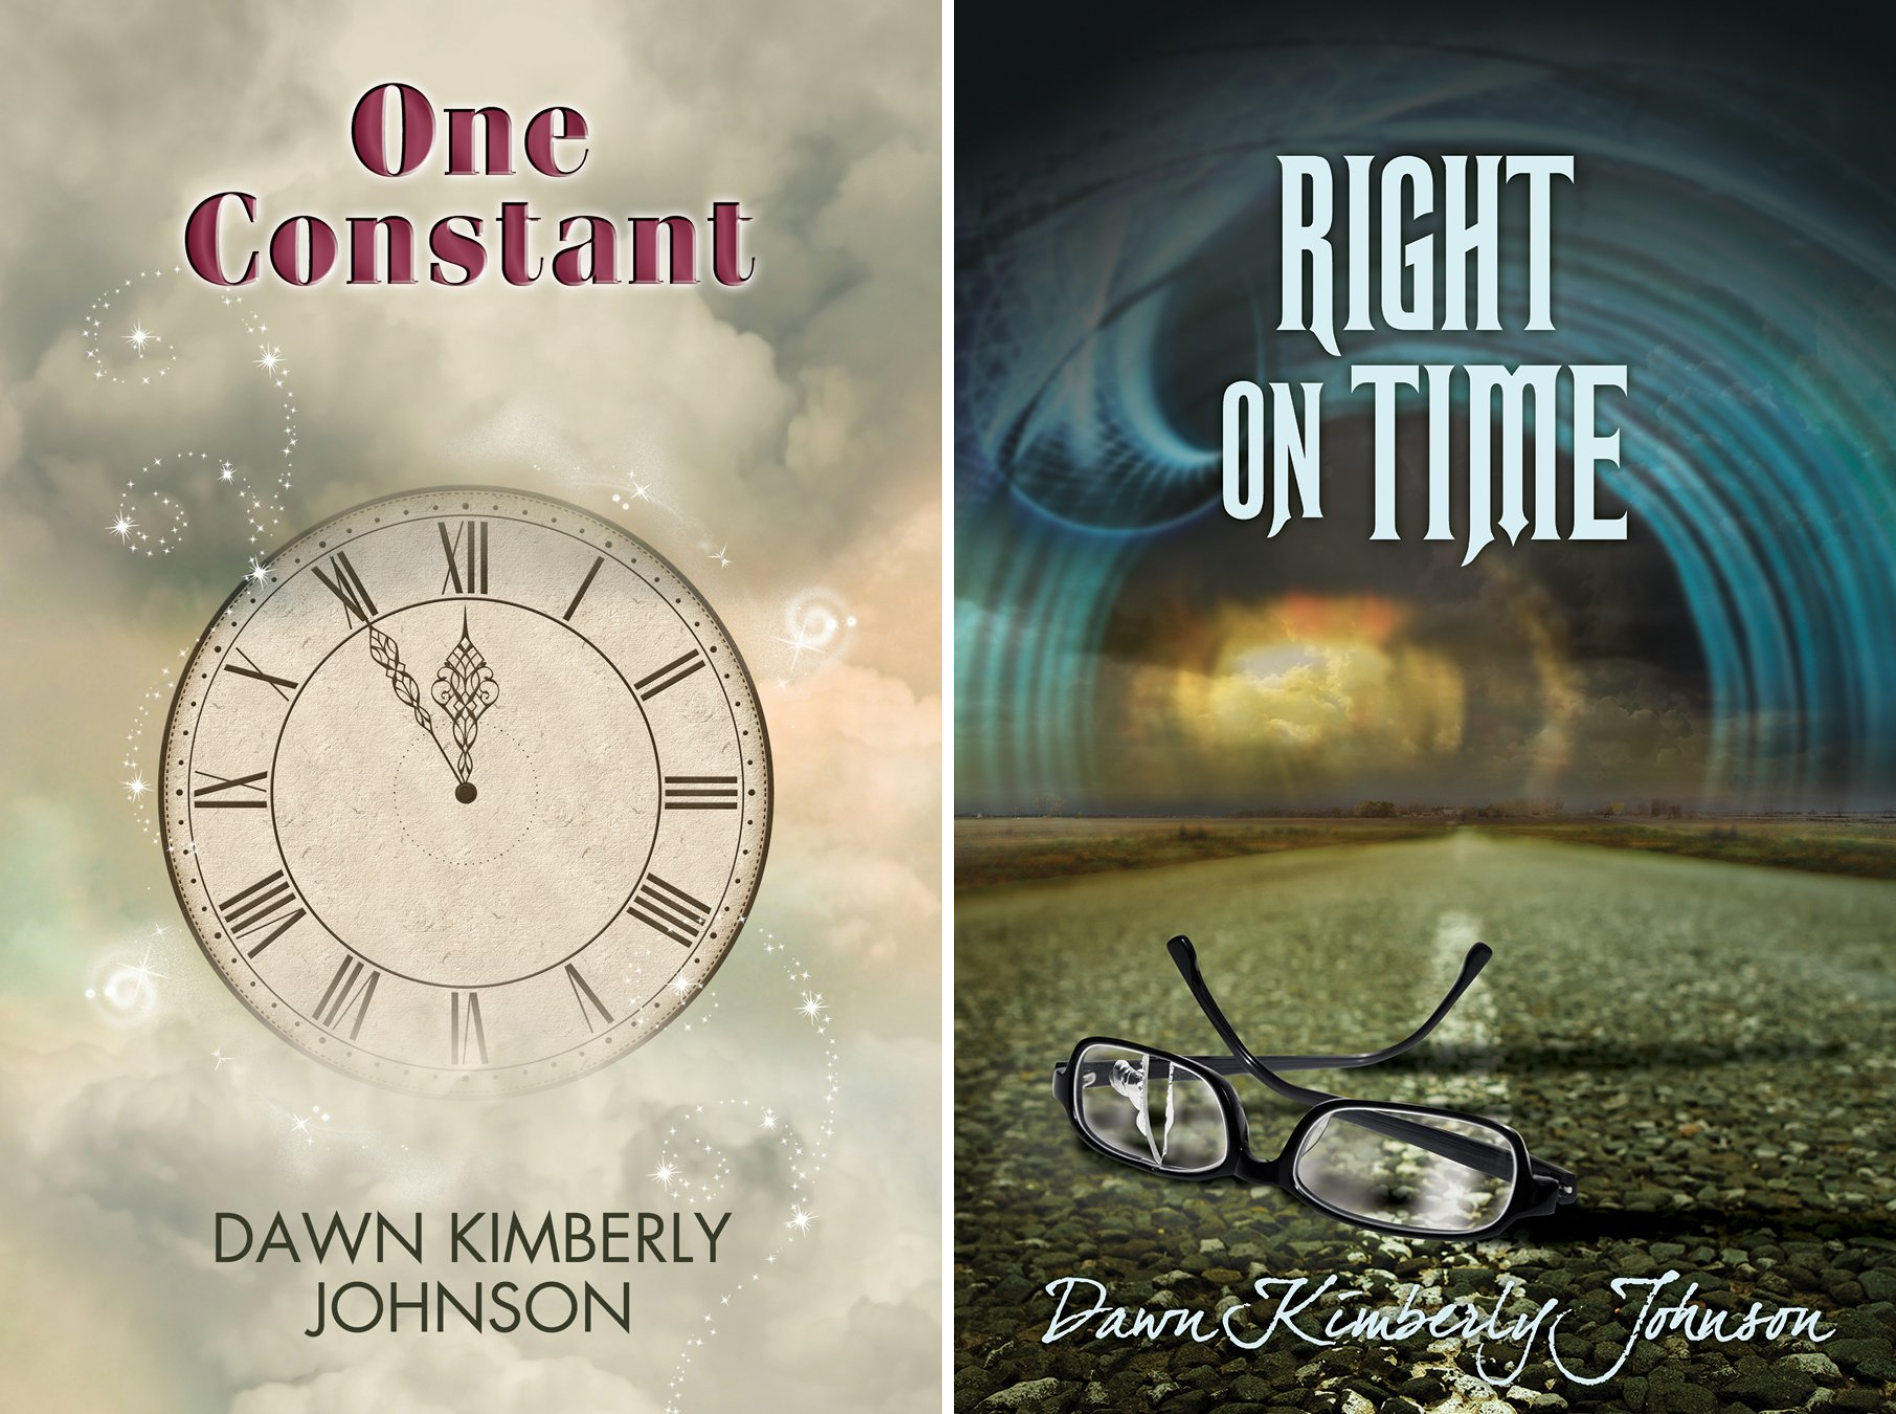 One Constant and Right on Time (2 Book Series)